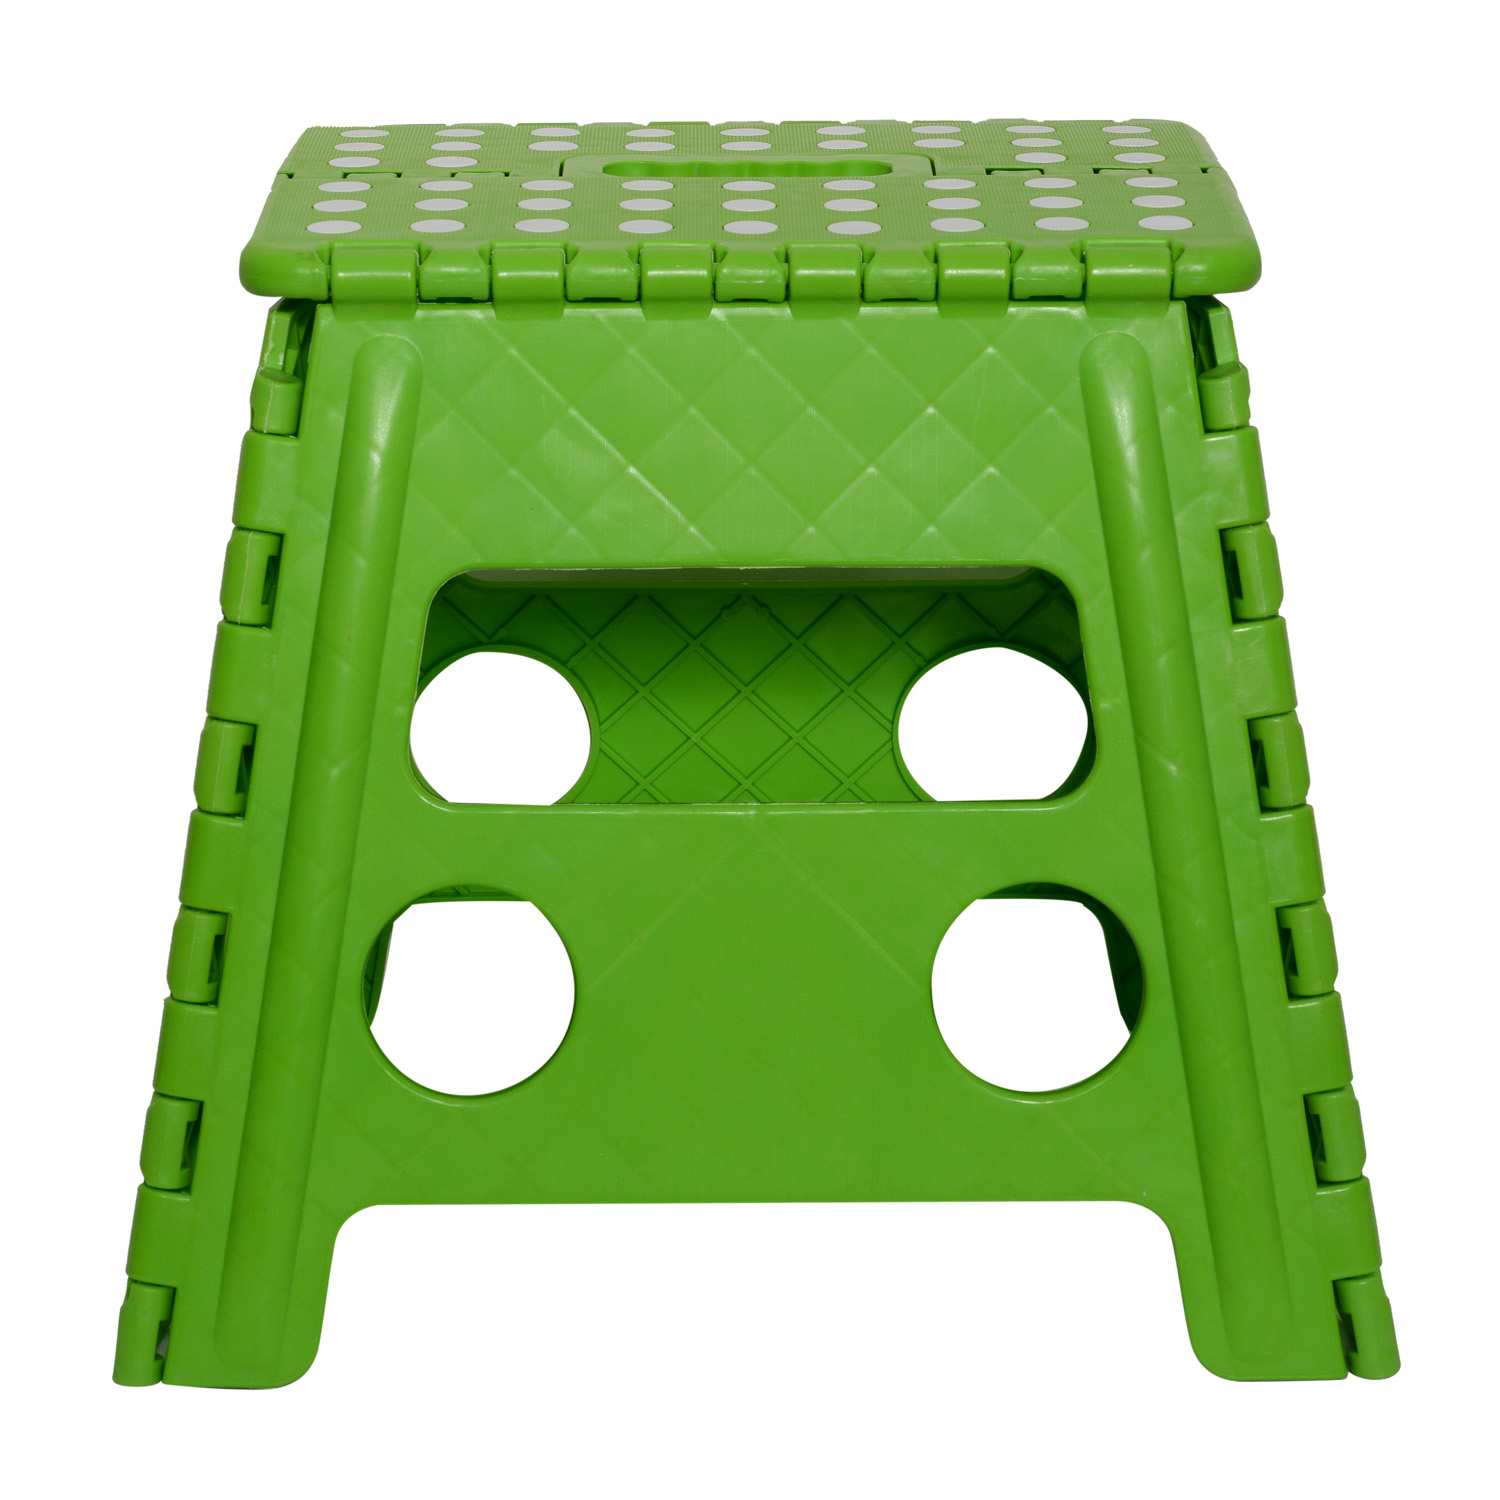 Wondrous Lime Green Super Step Stool Foldable Carry Handle No Slip Base 8 66X11 42X12 91 In Gmtry Best Dining Table And Chair Ideas Images Gmtryco